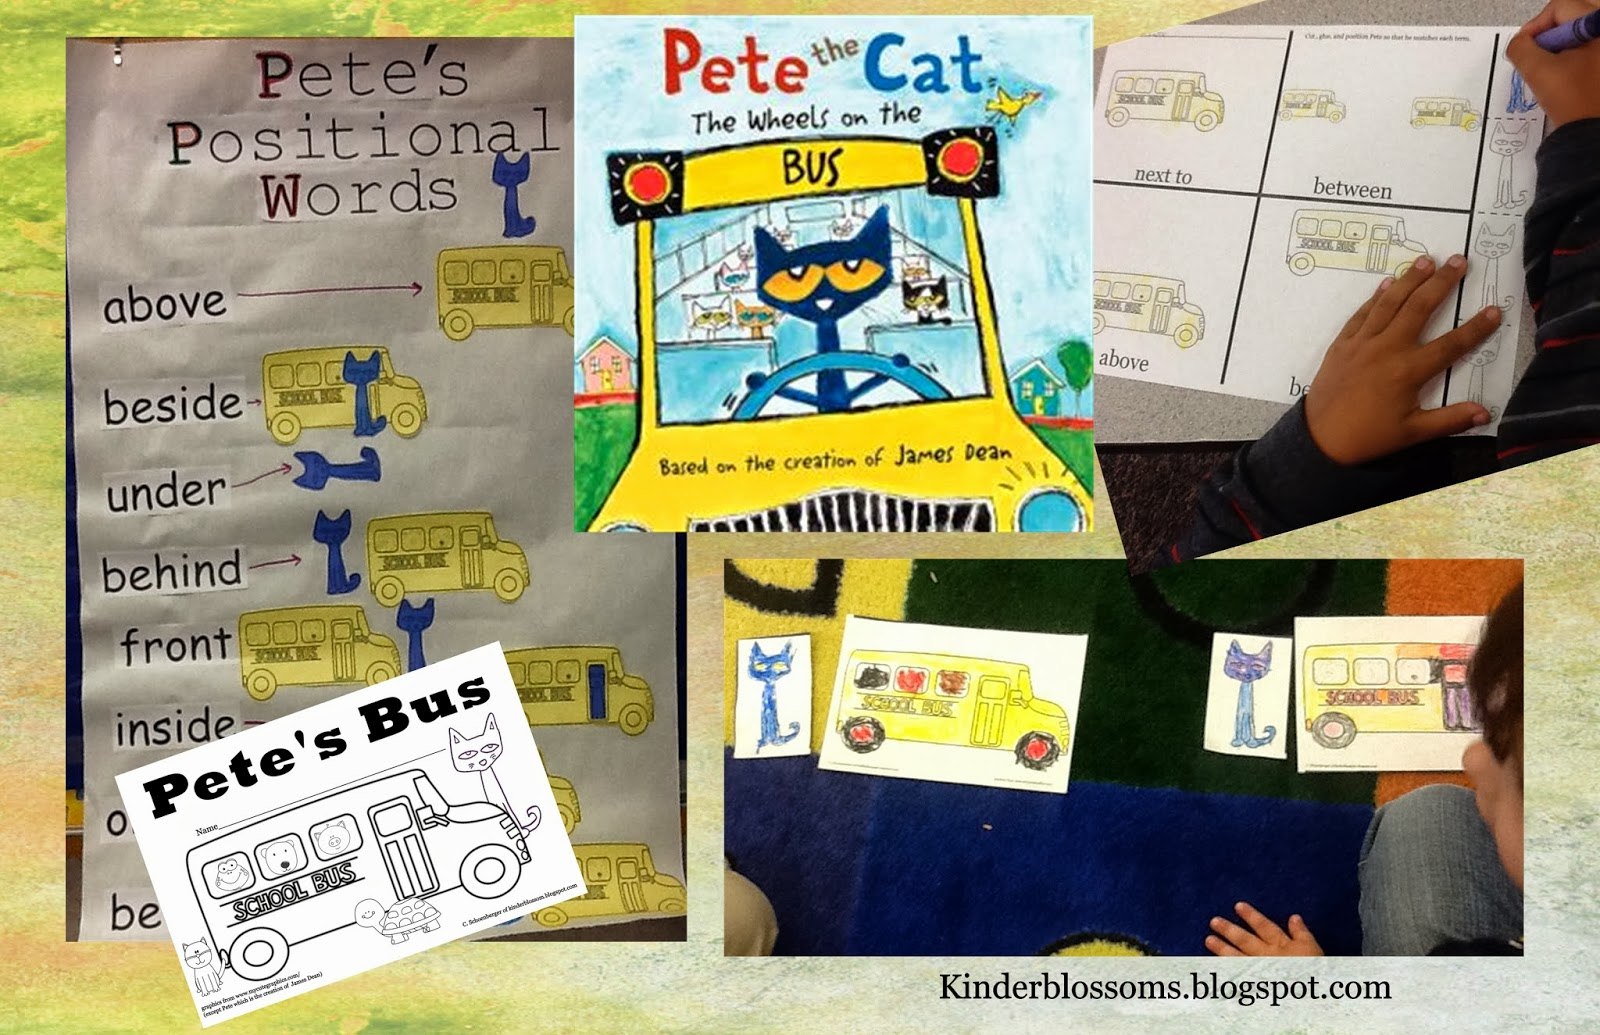 Christinas Kinder Blossoms Positional Words With Pete The Cat The